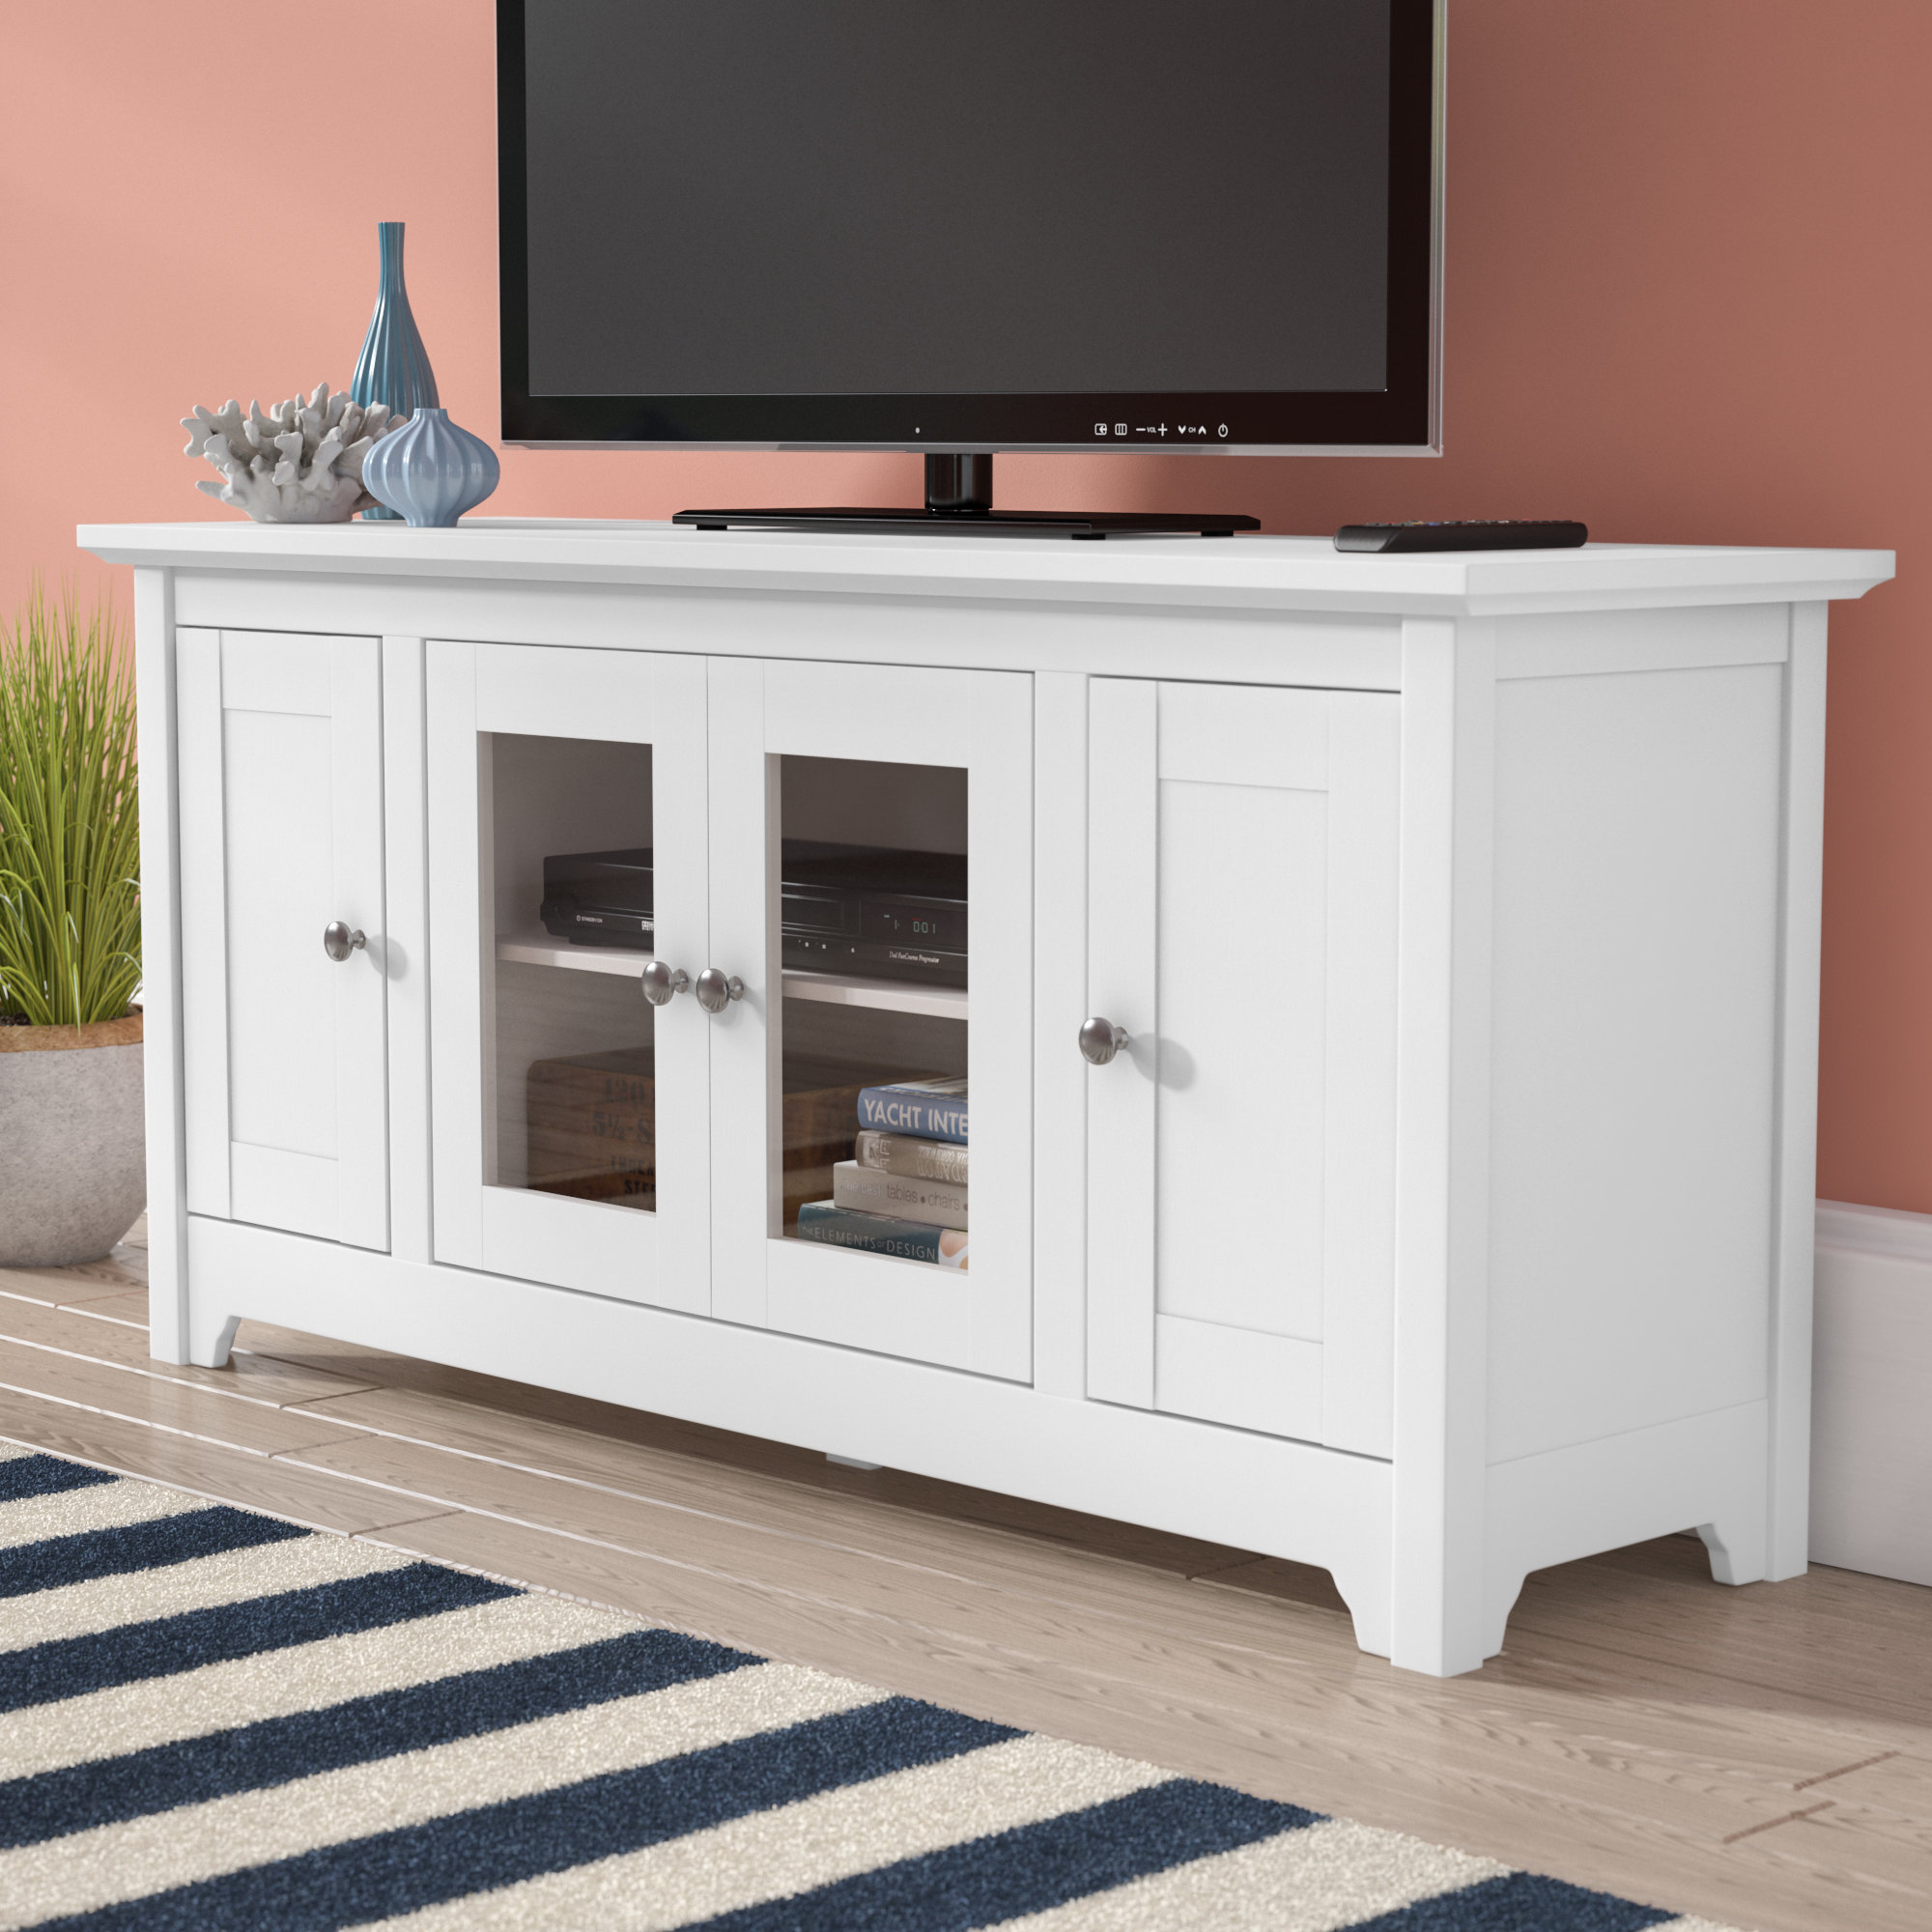 Longshore Tides | Birch Lane Pertaining To Marvin Rustic Natural 60 Inch Tv Stands (View 22 of 30)